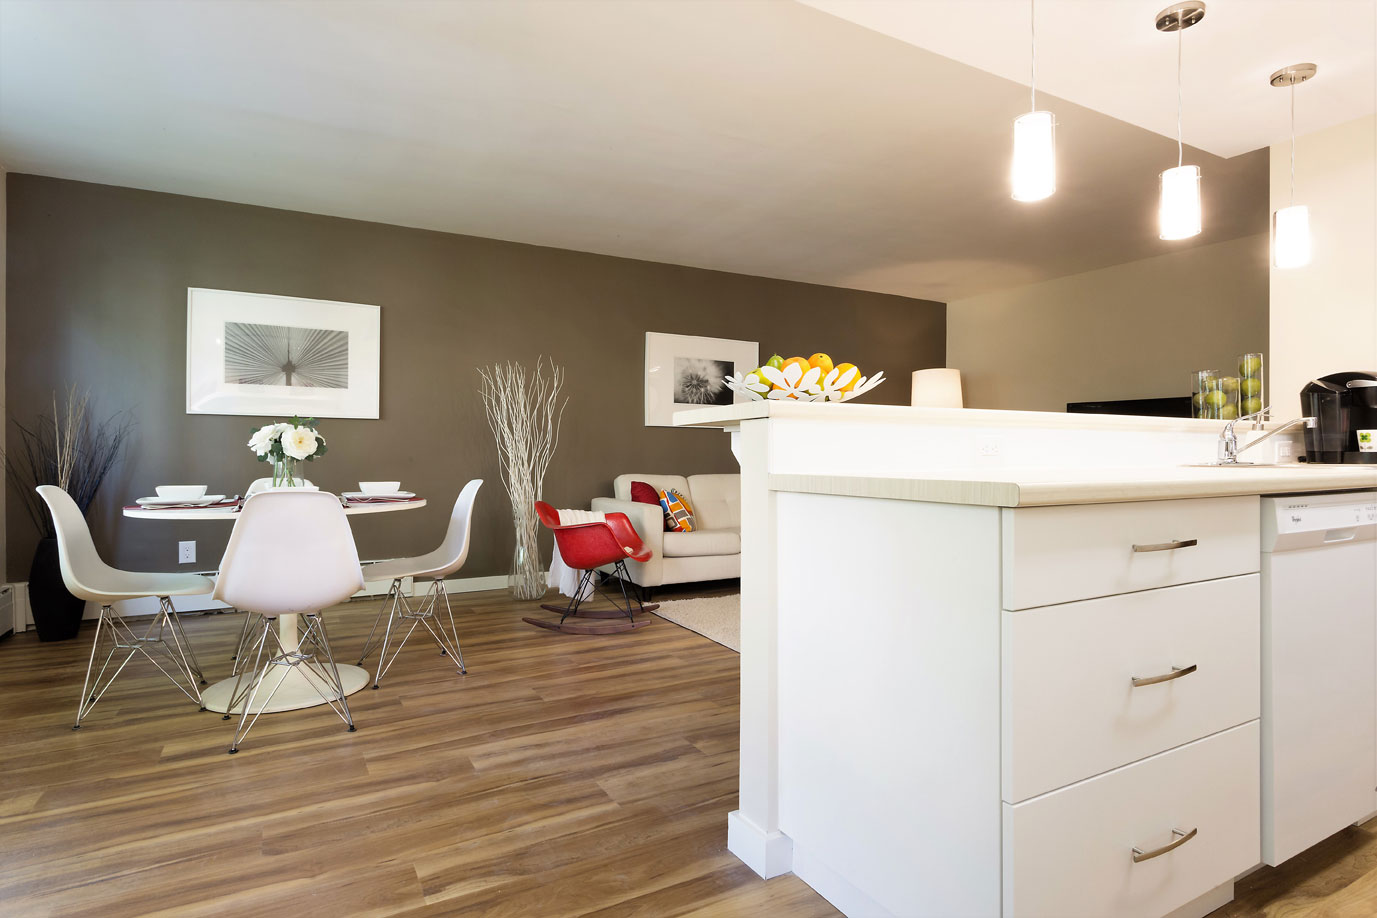 Kitchen-Cabinets-to-Dining.jpg